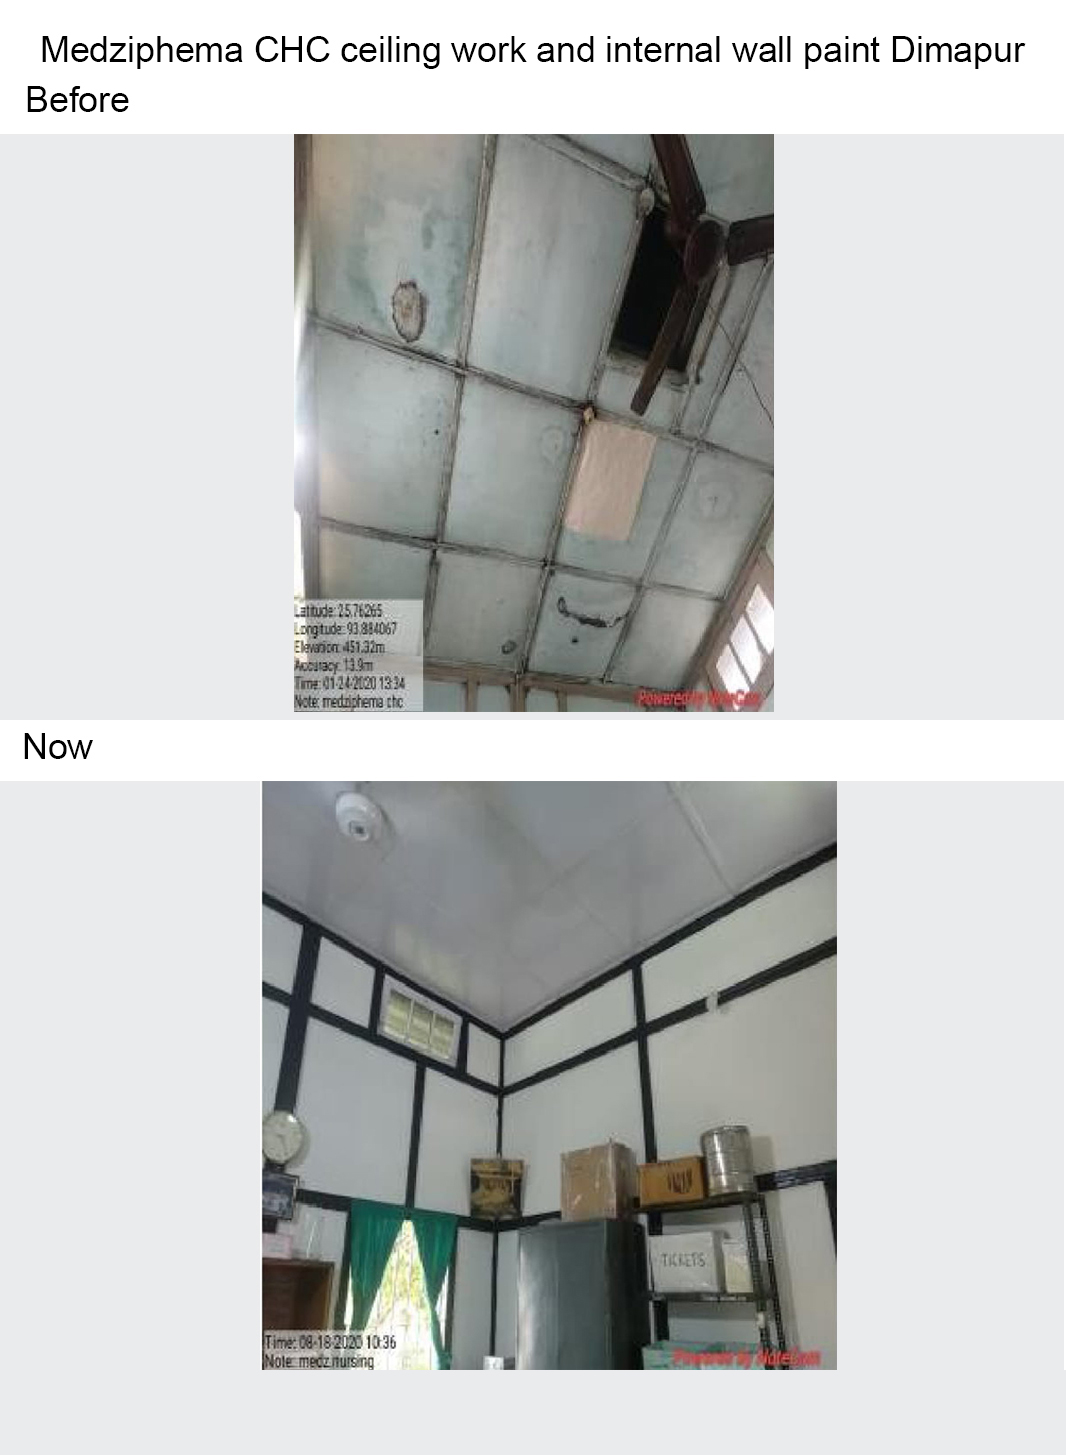 Medziphema-CHC-ceiling-work-and-internal-wall-paint-Dimapur